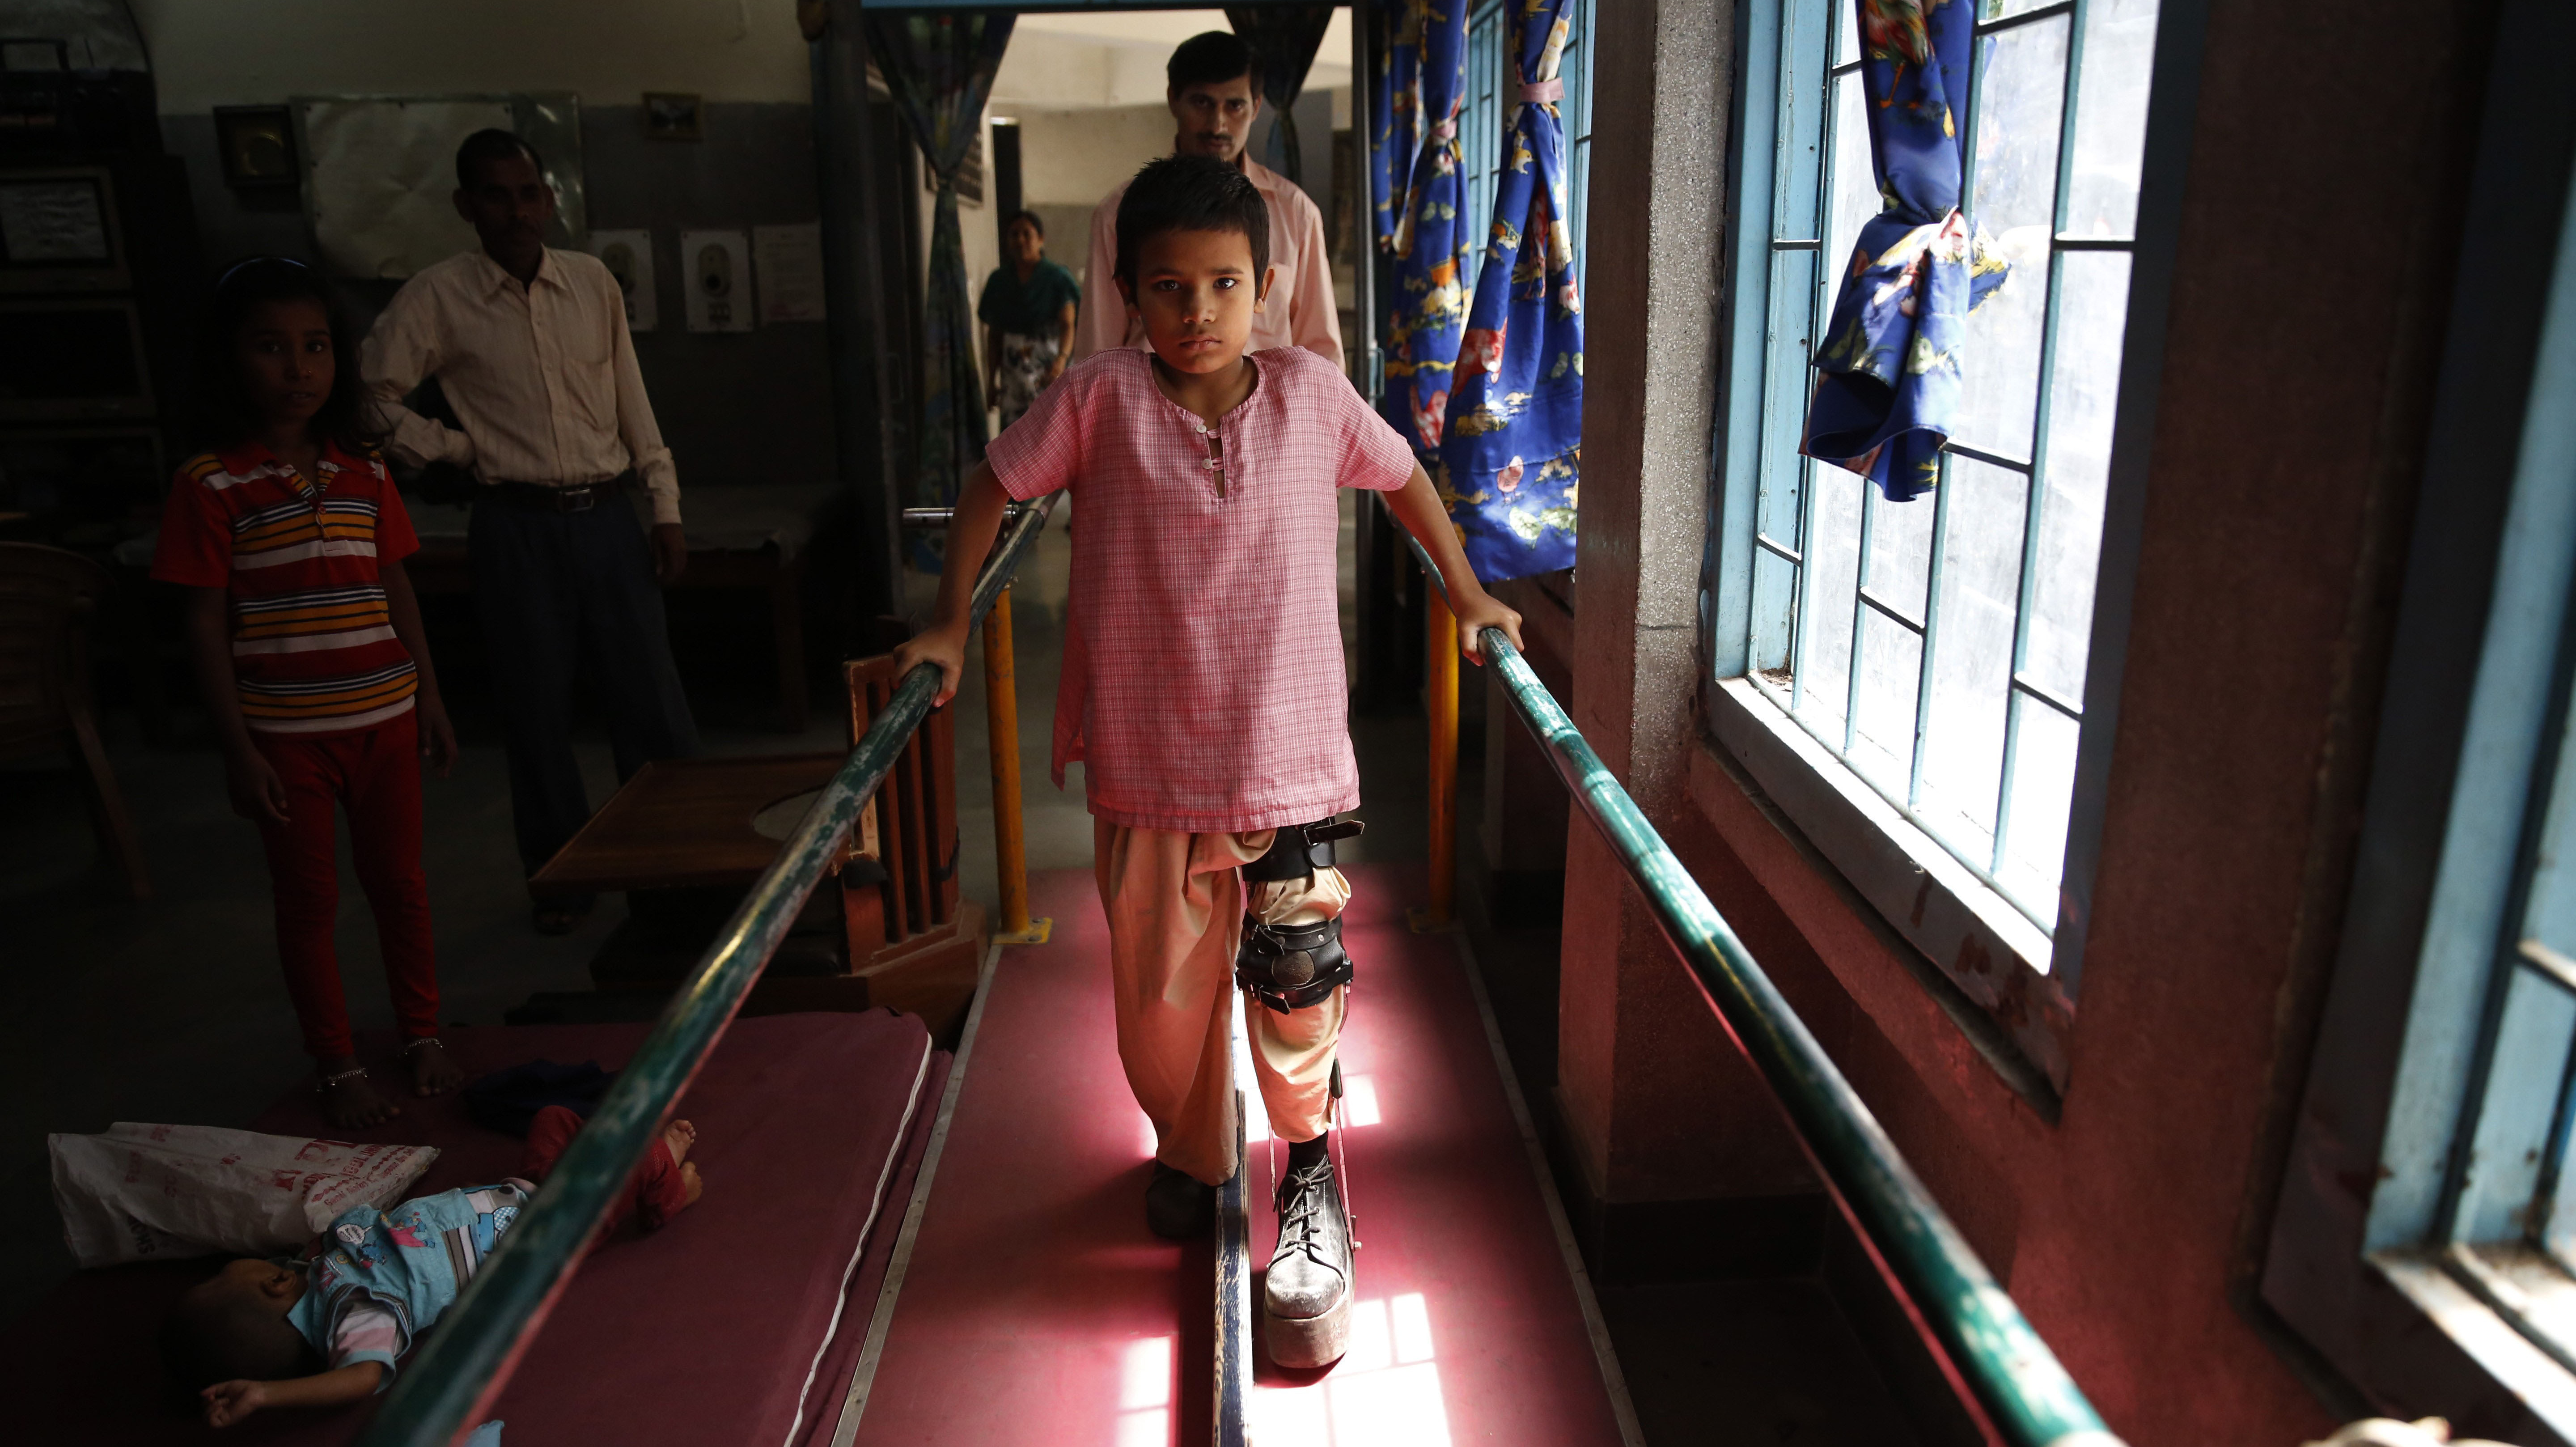 Southeast Asia Free Of Polio As India Declares Health Victory